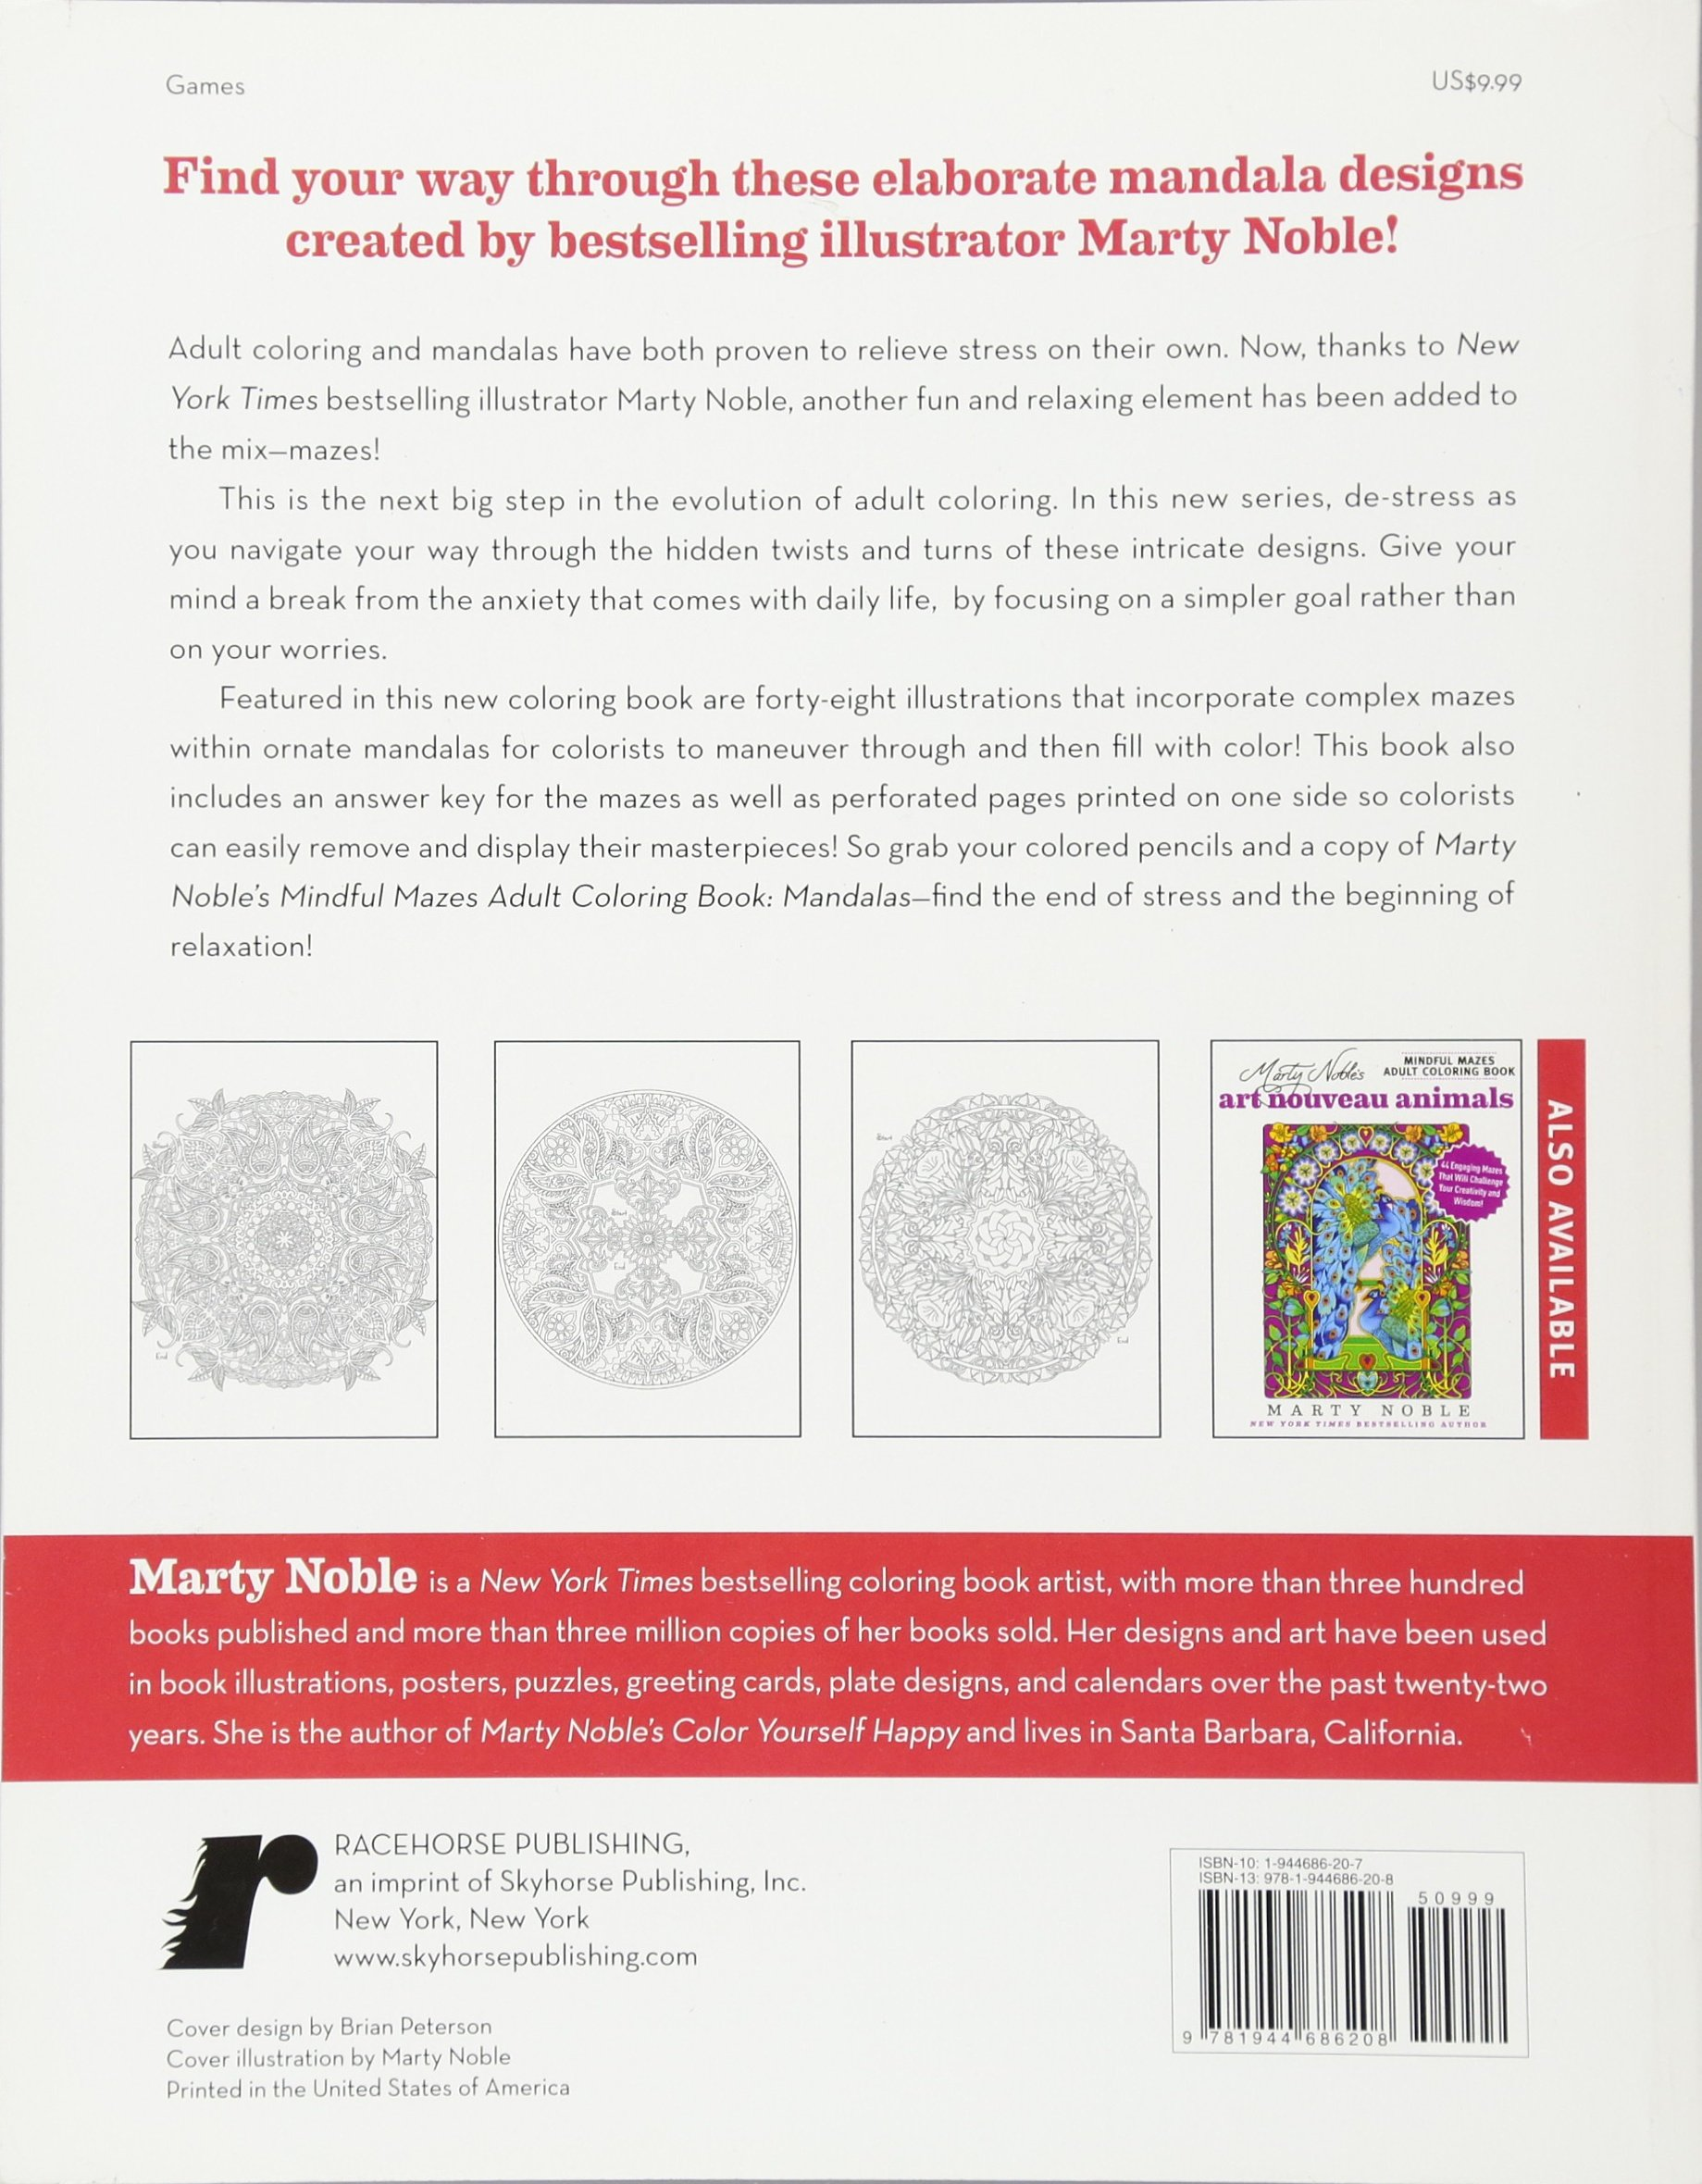 marty nobles mindful mazes adult coloring book mandalas 48 engaging mazes that will challenge your creativity and wisdom